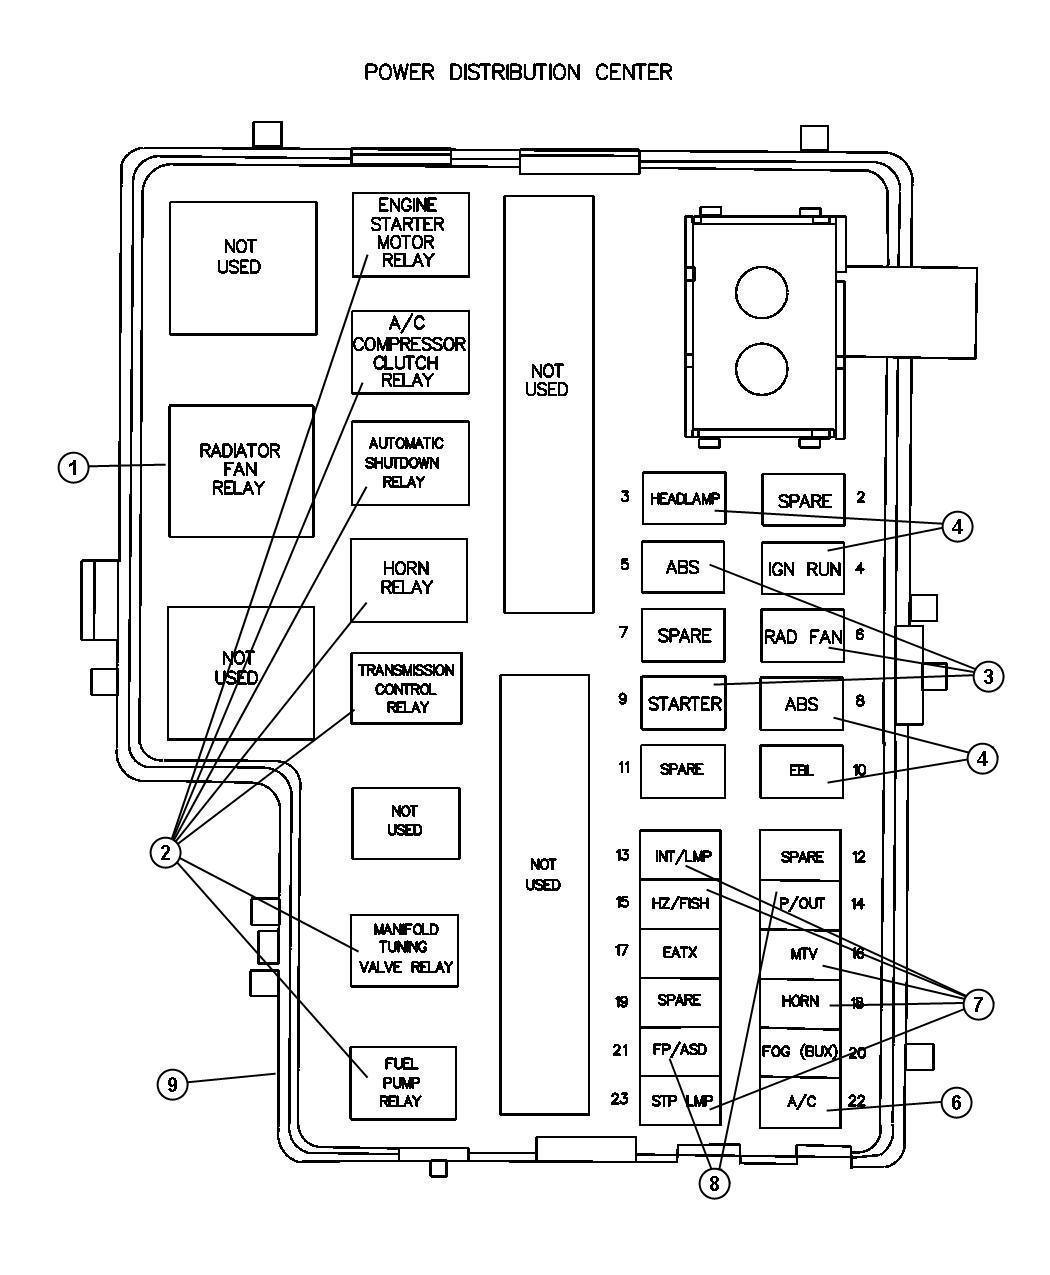 2007 bmw x5 fuse box with Land Rover Range Door Lock Fuse on Nissan Pathfinder 2005 Engine Diagram further Bmw E46 Cooling System Diagram Moreover 2006 X5 besides 1998 F150 Heater Blows Cold Air likewise Nissan Engine Diagram further 2002 Chevy Blazer Front End Diagram.